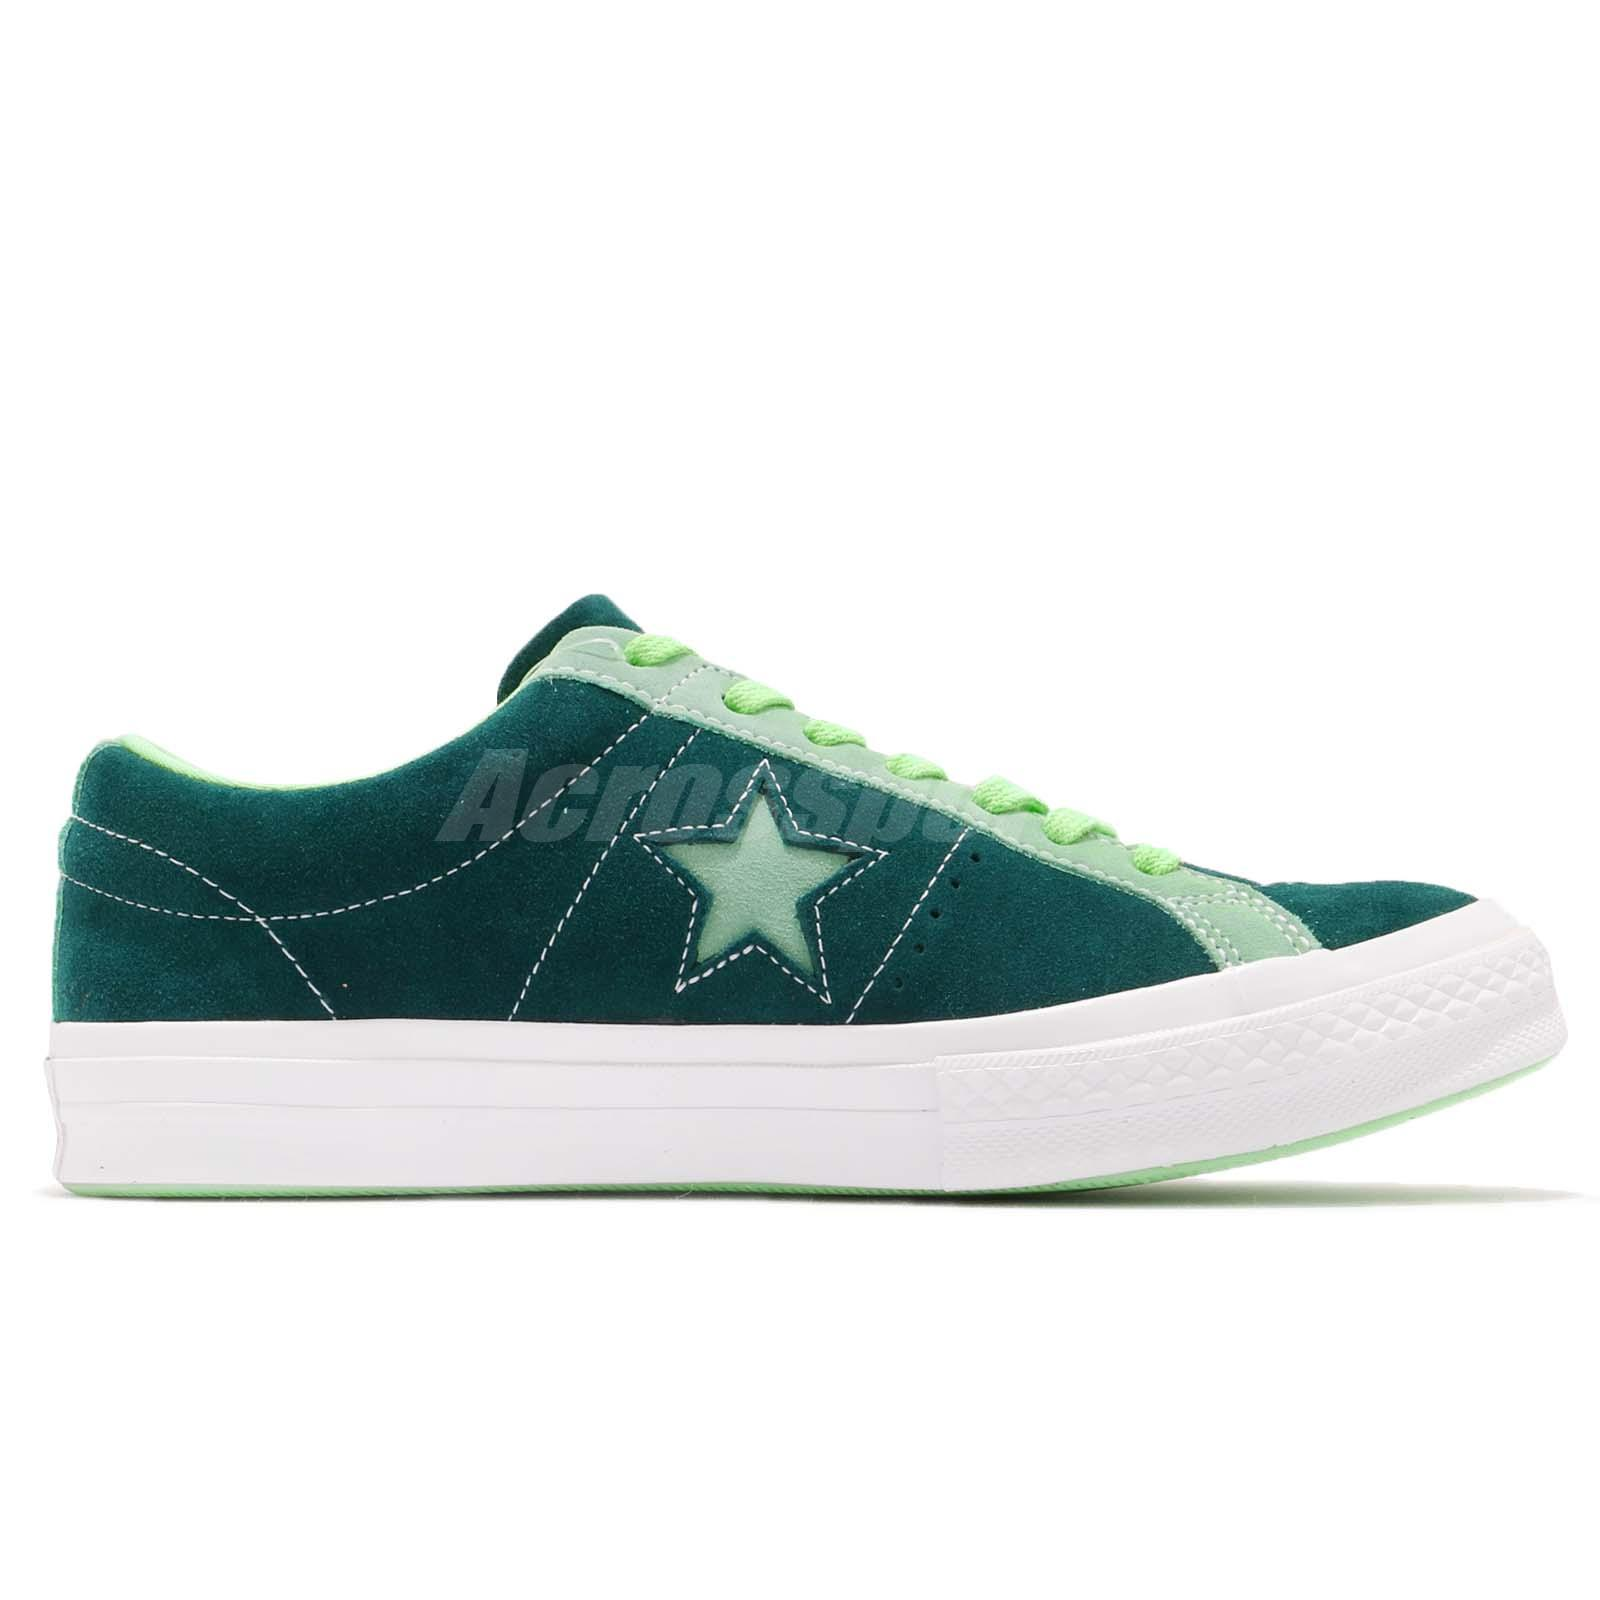 Converse One Star Green White Suede Men Women Casual Shoes Sneakers ... a29d6540e9a